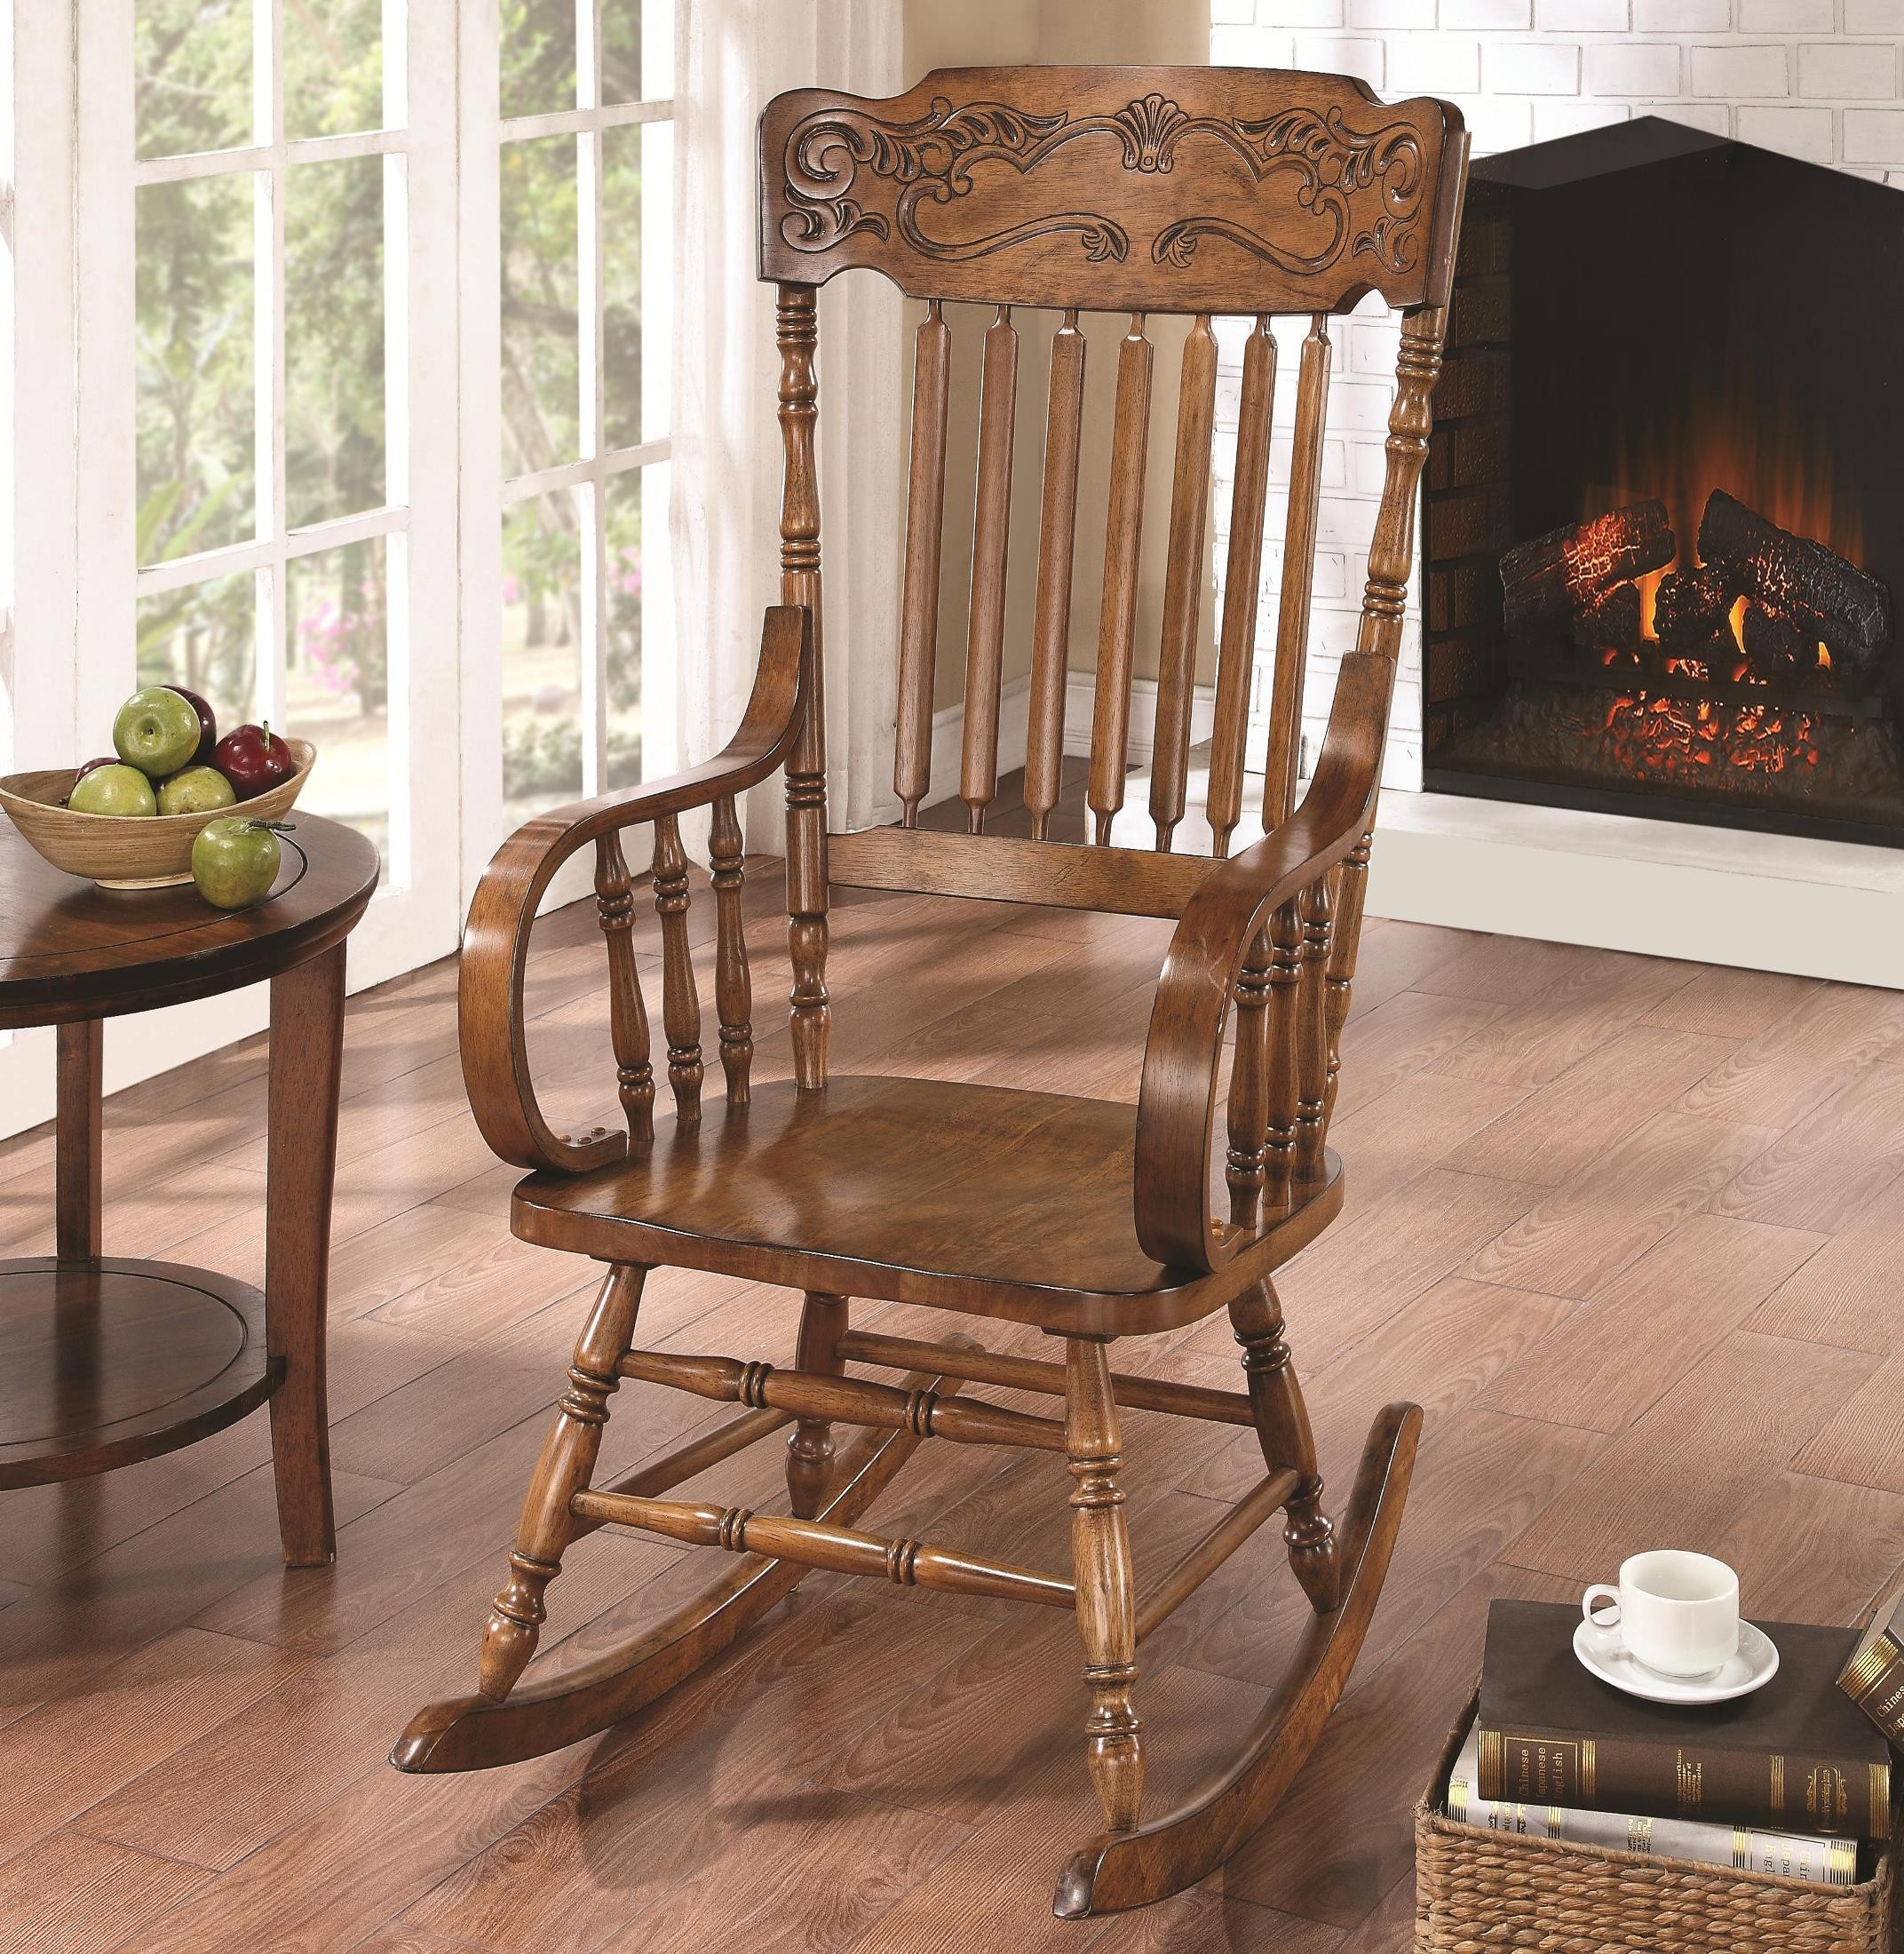 600175 Wooden Rocking Chair from Coaster (600175 ...